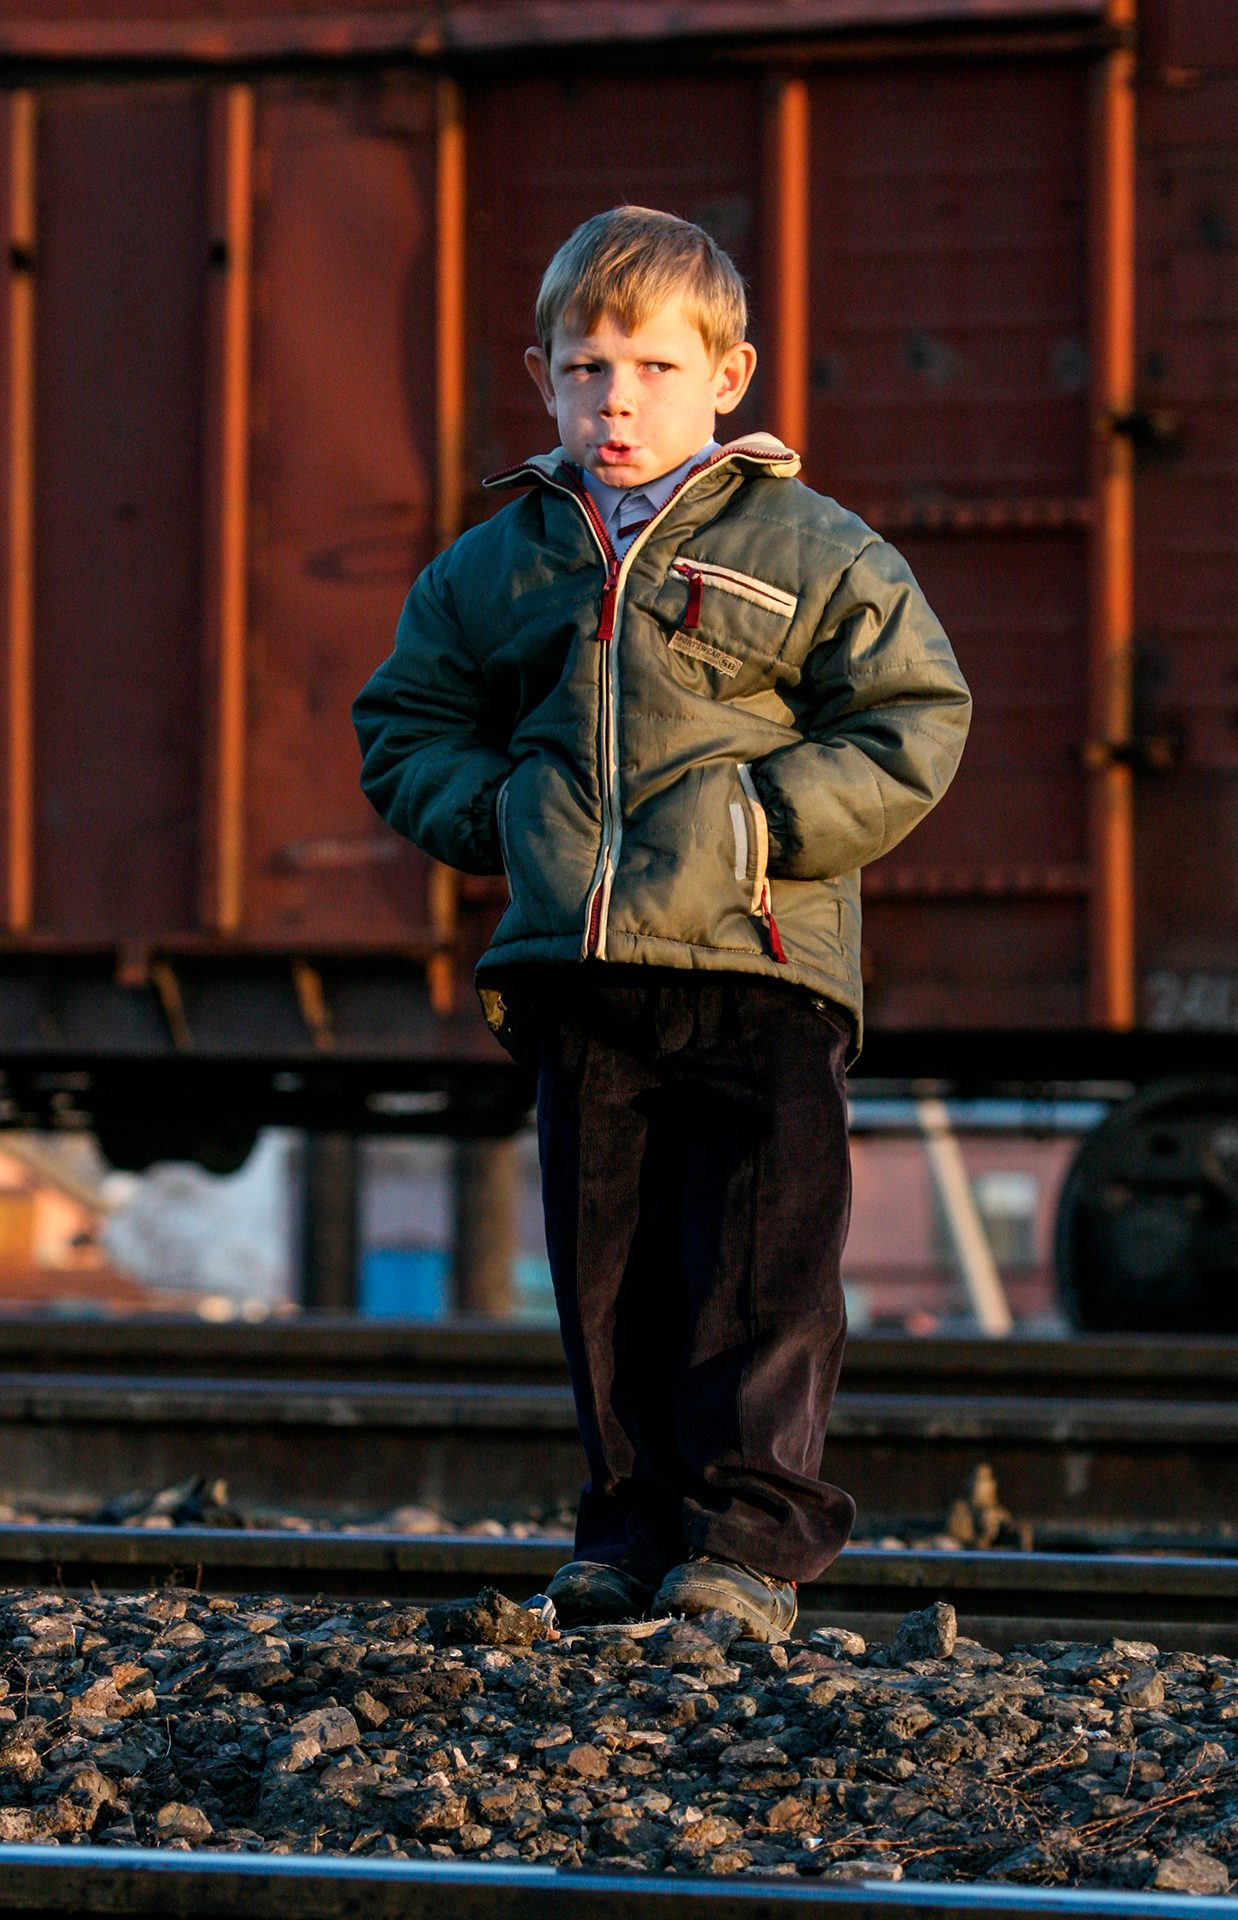 Long recess, Almaty, kid, boy, mood, railway, junction